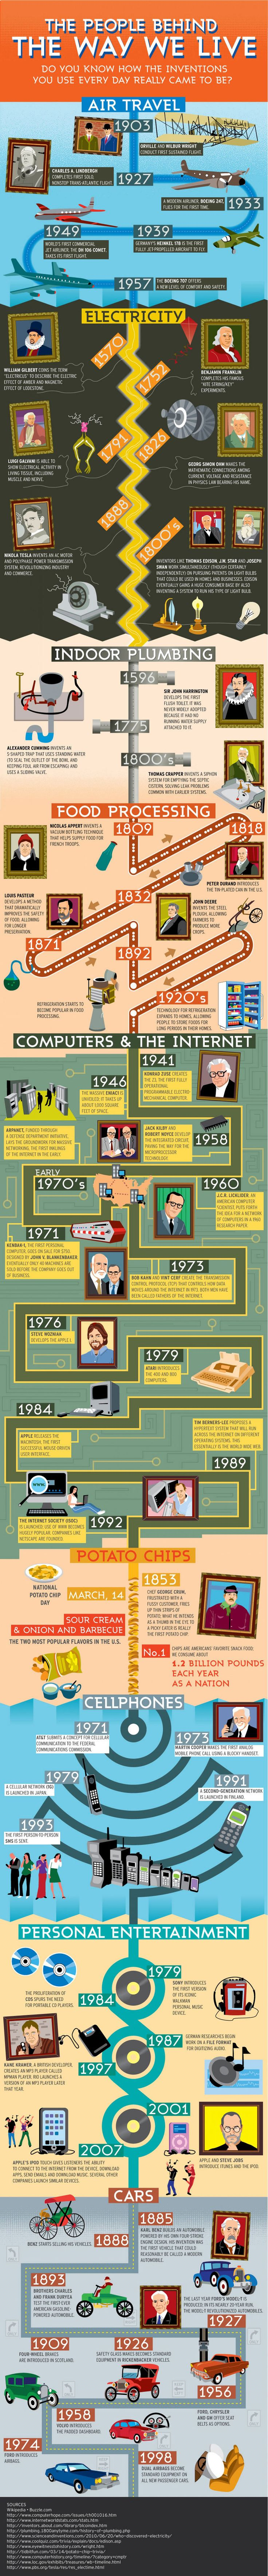 The People and Inventors Behind the Inventions Infographic. Topic: computer, patent, scientist, electricity.